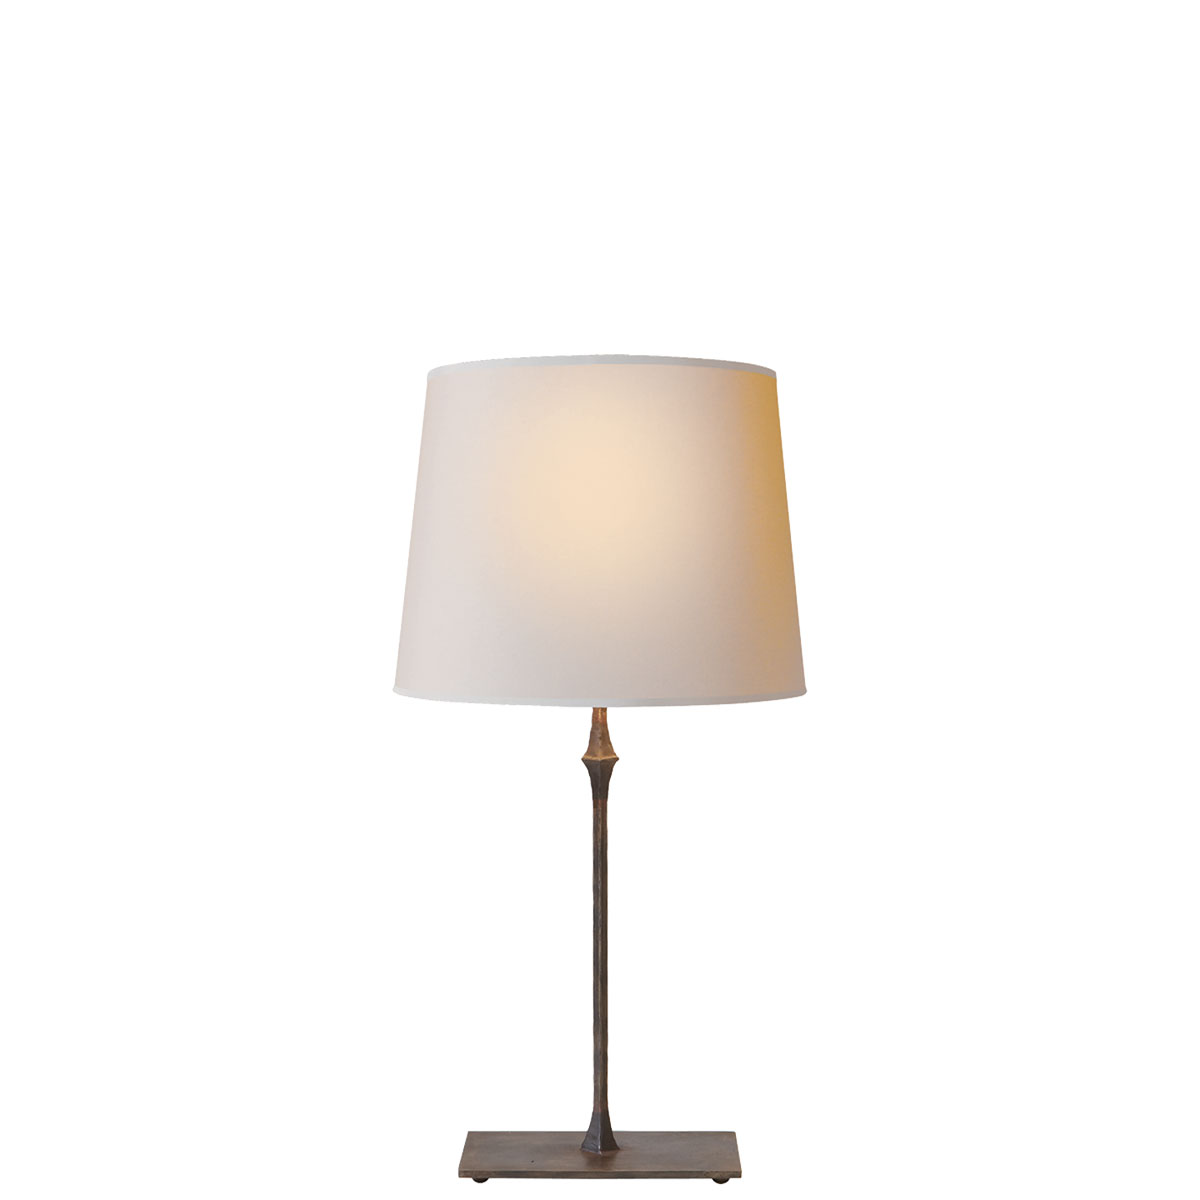 Visual comfort dauphine bedside lamp table lamp neenas lighting aged iron with wax finish natural paper shade chevronleft dauphine bedside lamp geotapseo Gallery